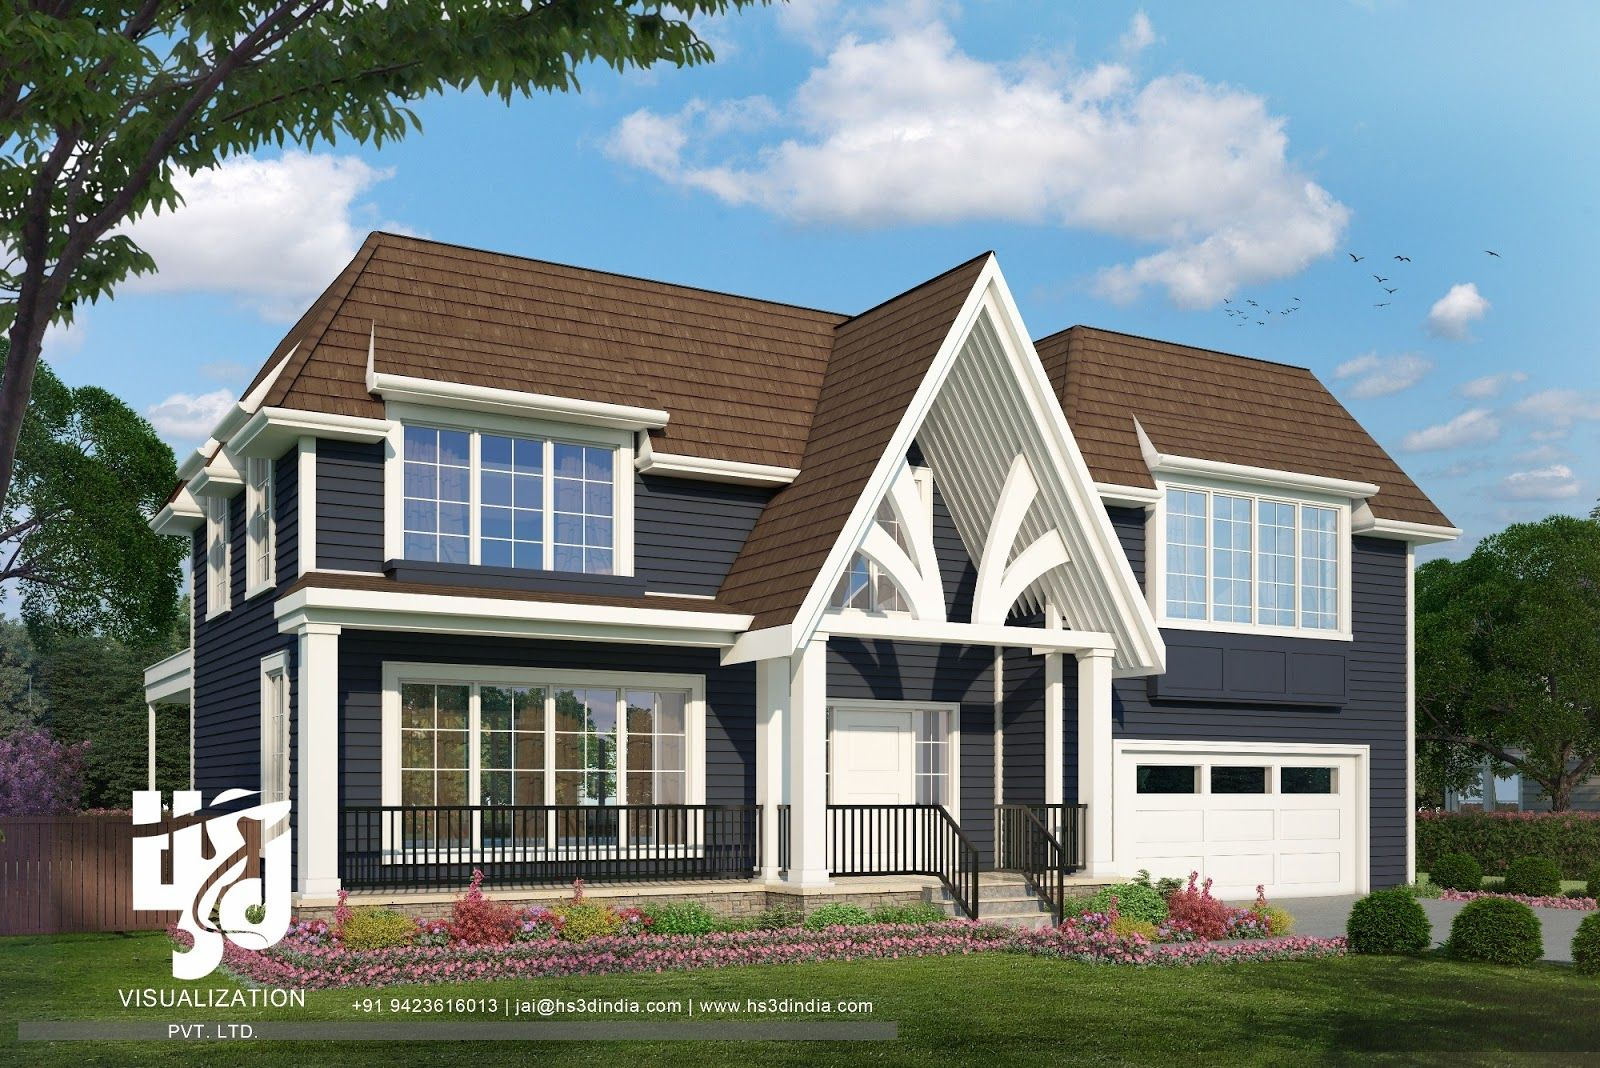 Pin by HS3D VISUALIZATION PVT. LTD. on 2018 TOP BUNGALOW DESIGN CGI House Siding Design Html on best house designs, 2016 house designs, 2015 house designs, lao house designs,